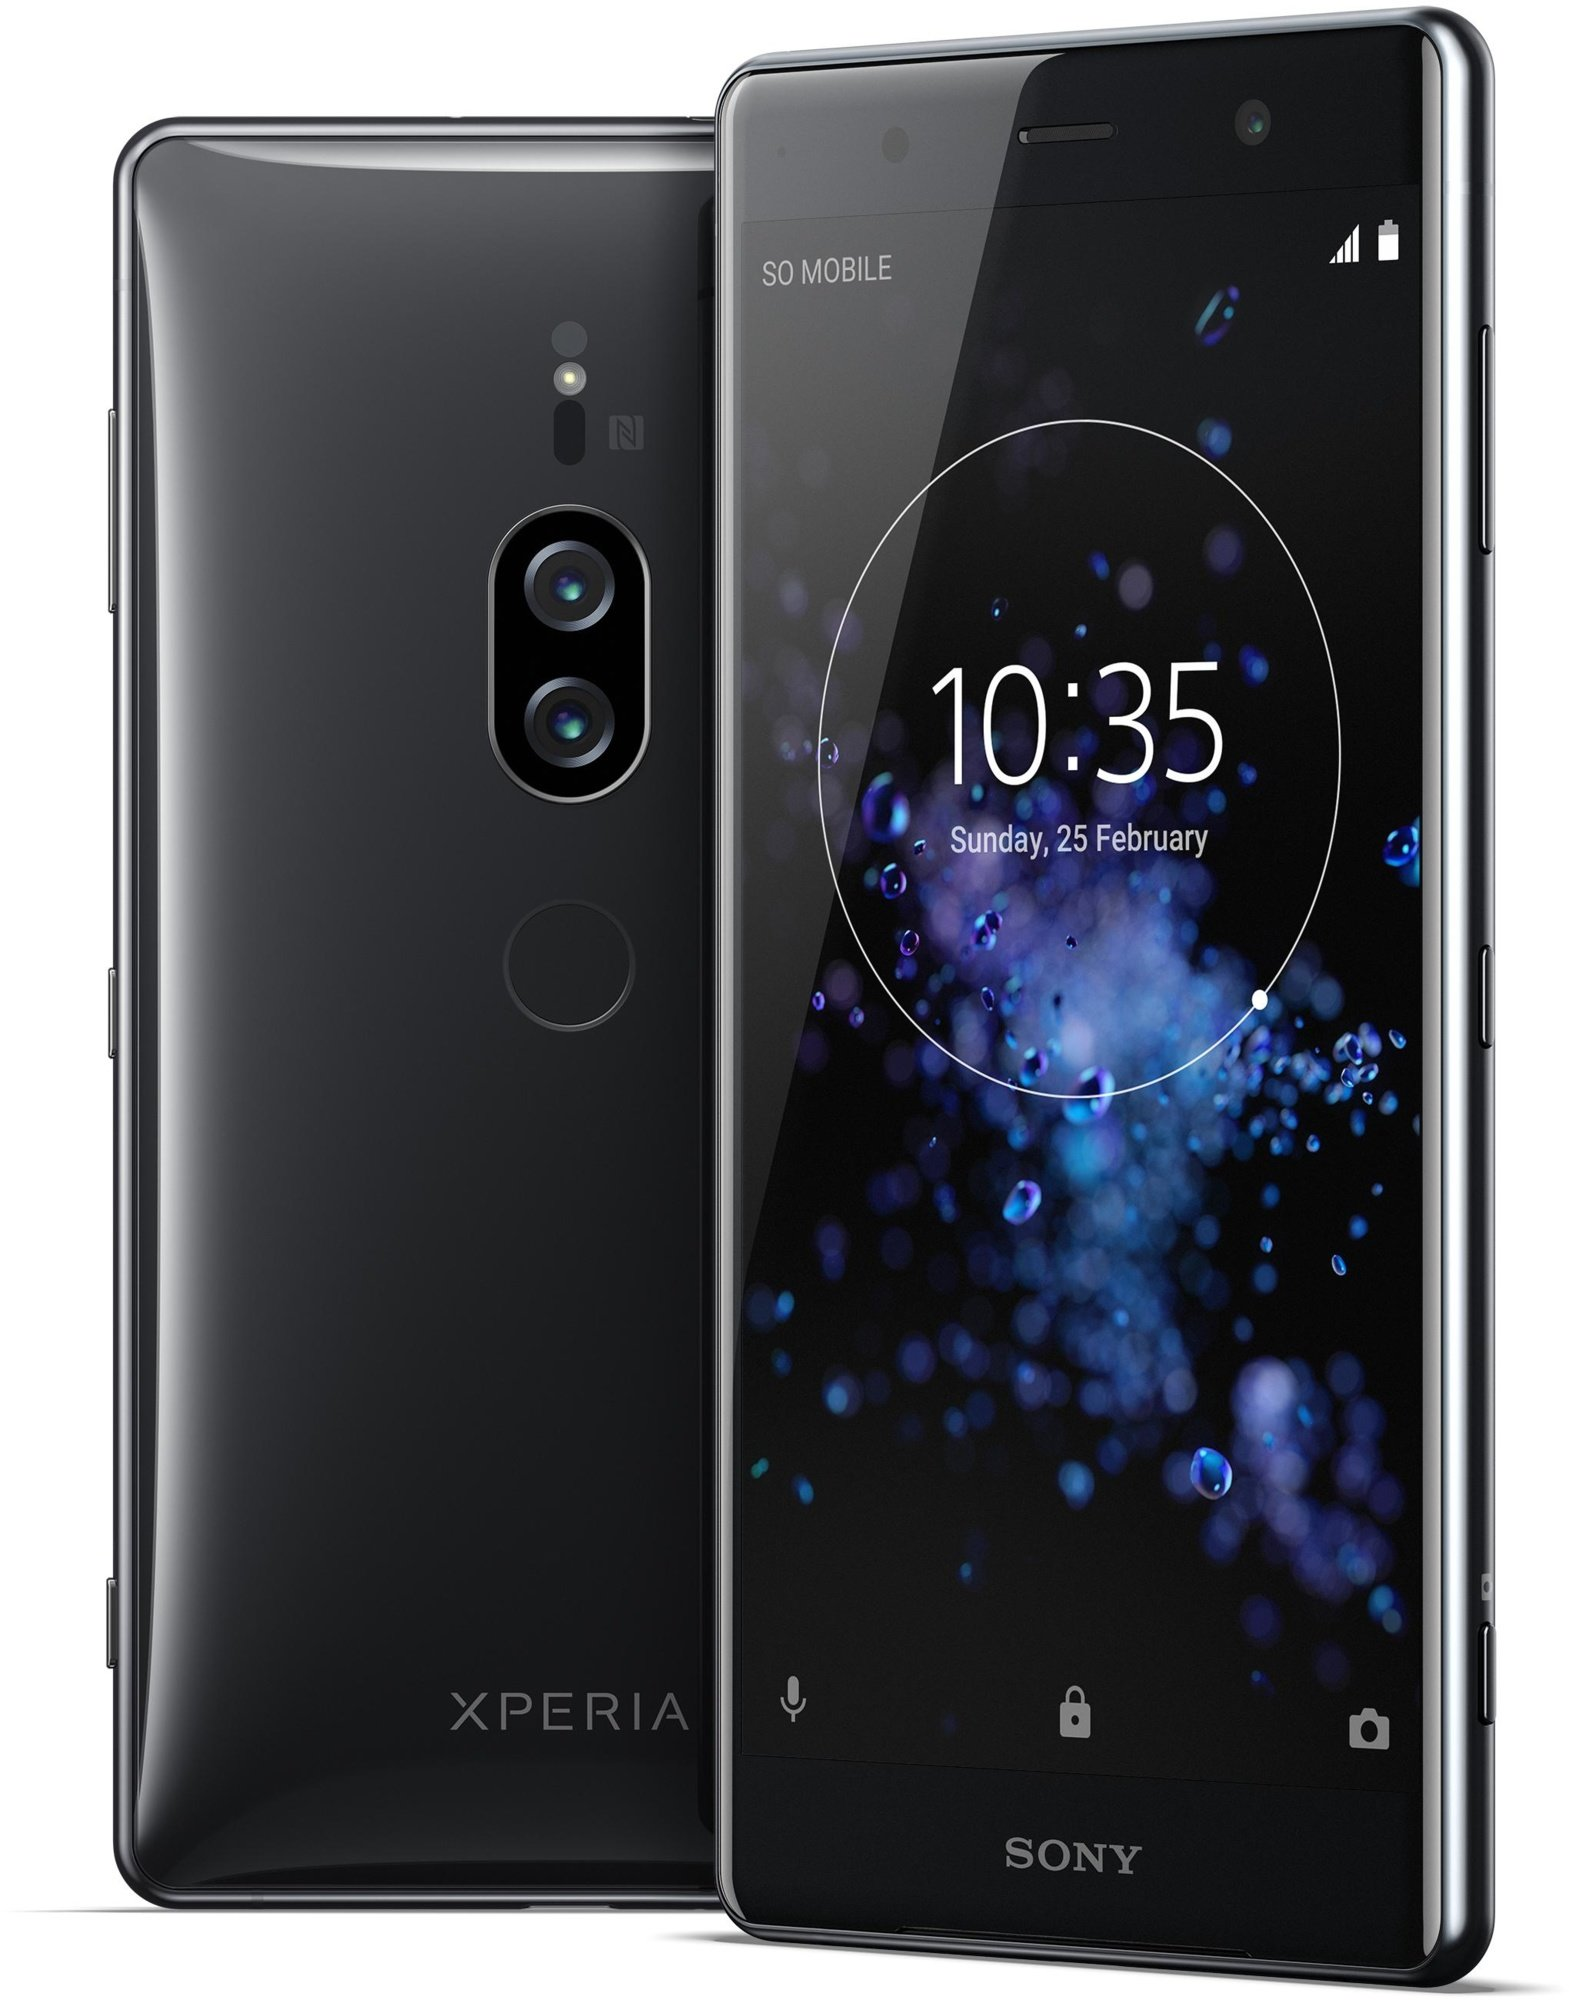 Sony Xperia XZ2 Premium 64GB Chrome Black